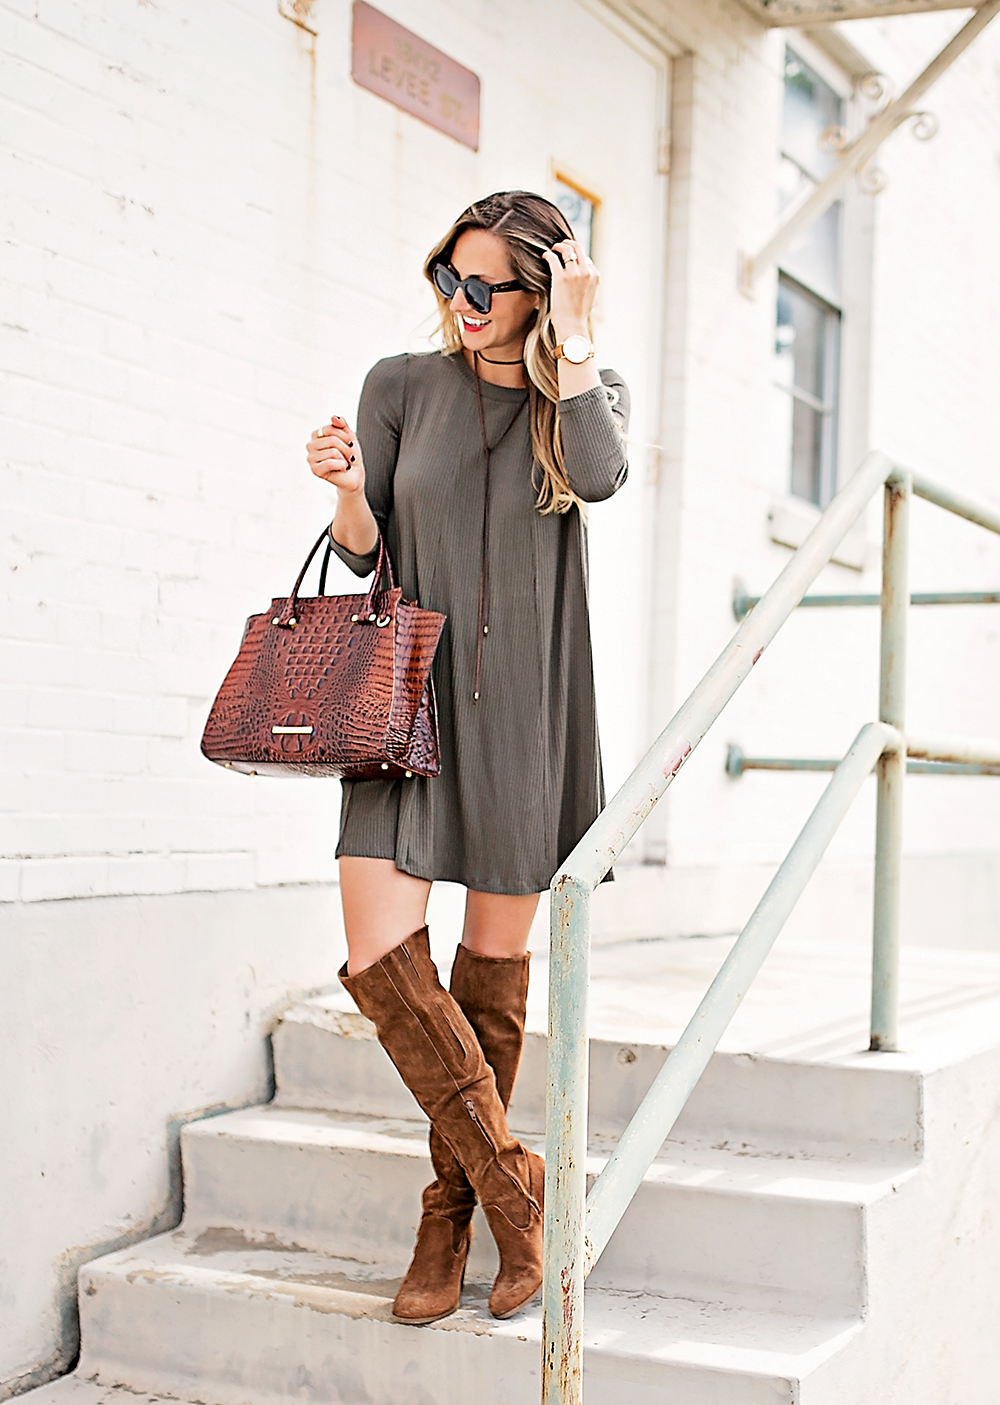 livvyland-blog-olivia-watson-austin-texas-fashion-blogger-fall-outfit-over-the-knee-otk-boots-brahmin-duxbury-handbag-olive-green-shift-dress-celine-marta-mini-sunglasses-5